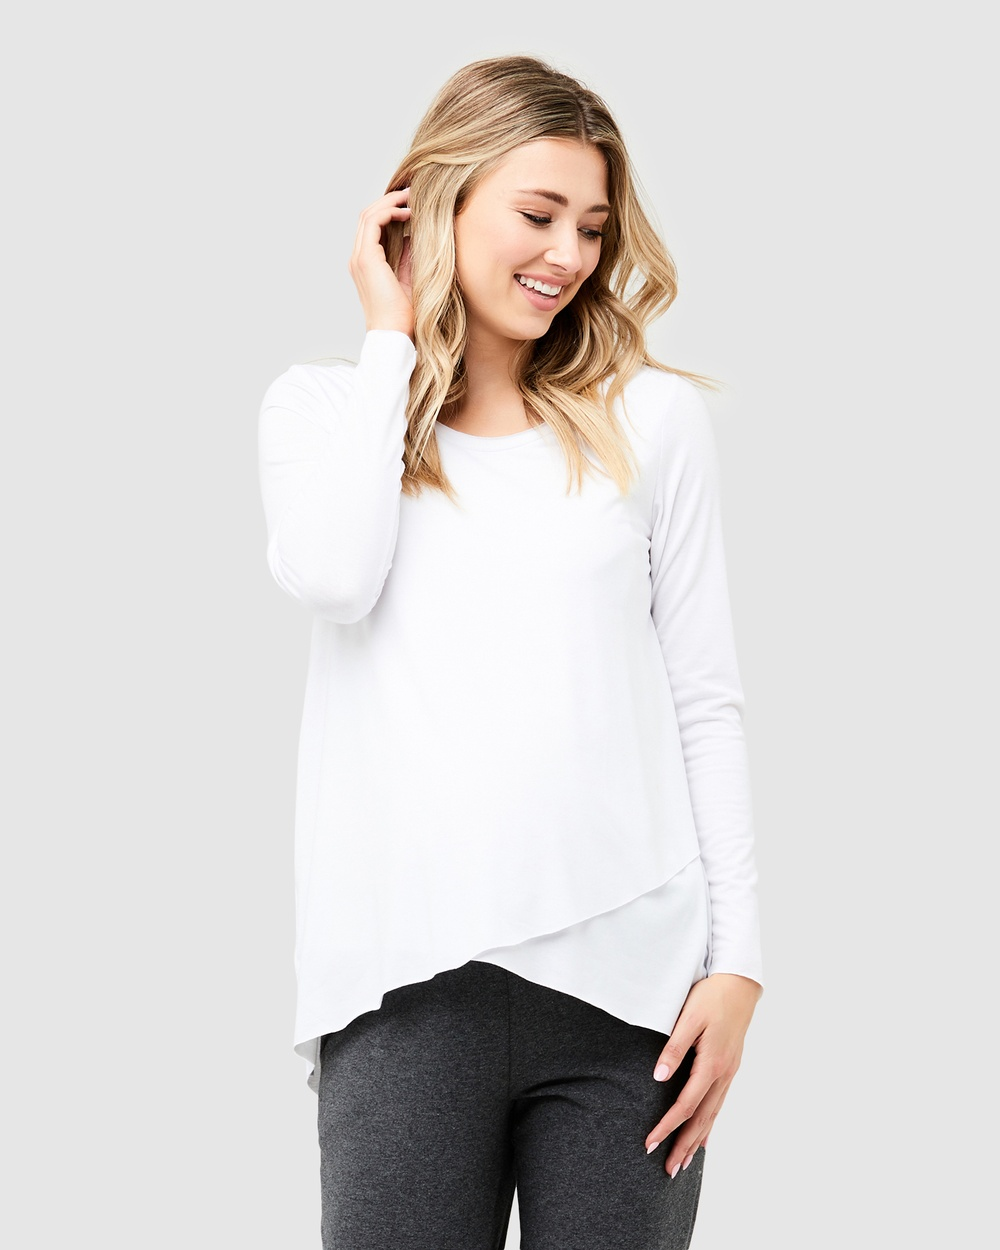 Ripe Maternity Raw Edge Nursing Top Tops White Raw Edge Nursing Top